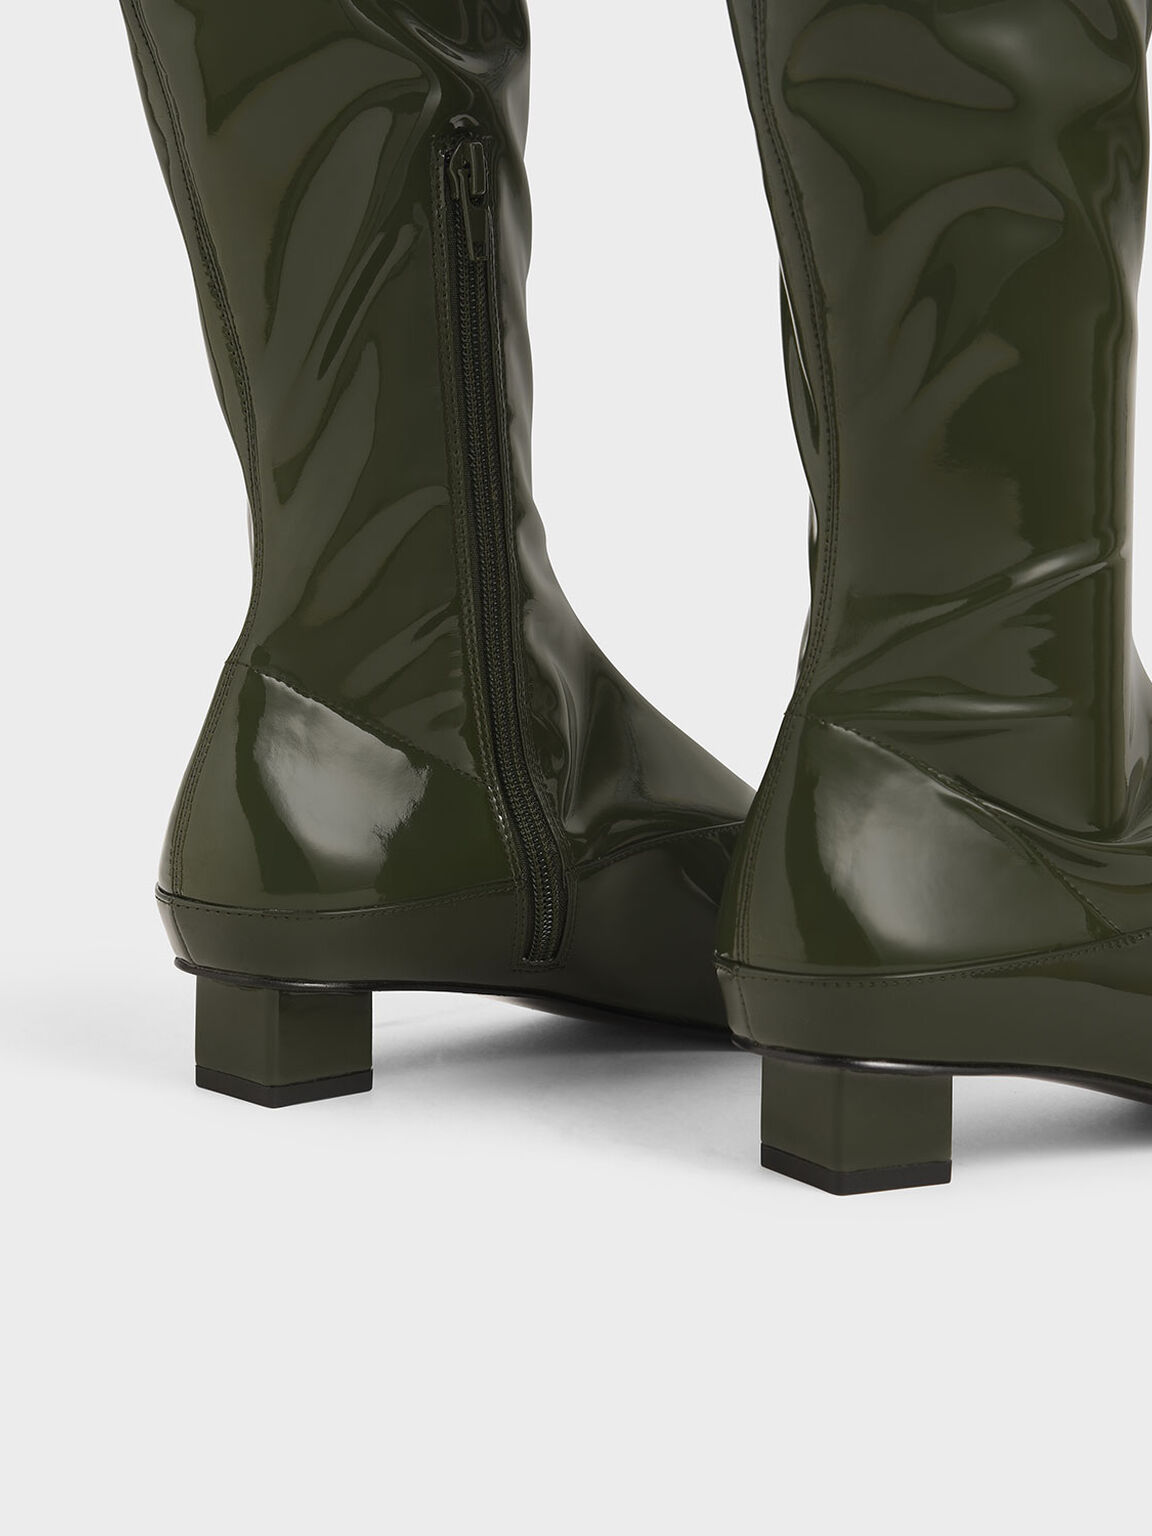 Thigh High Patent Boots, Green, hi-res